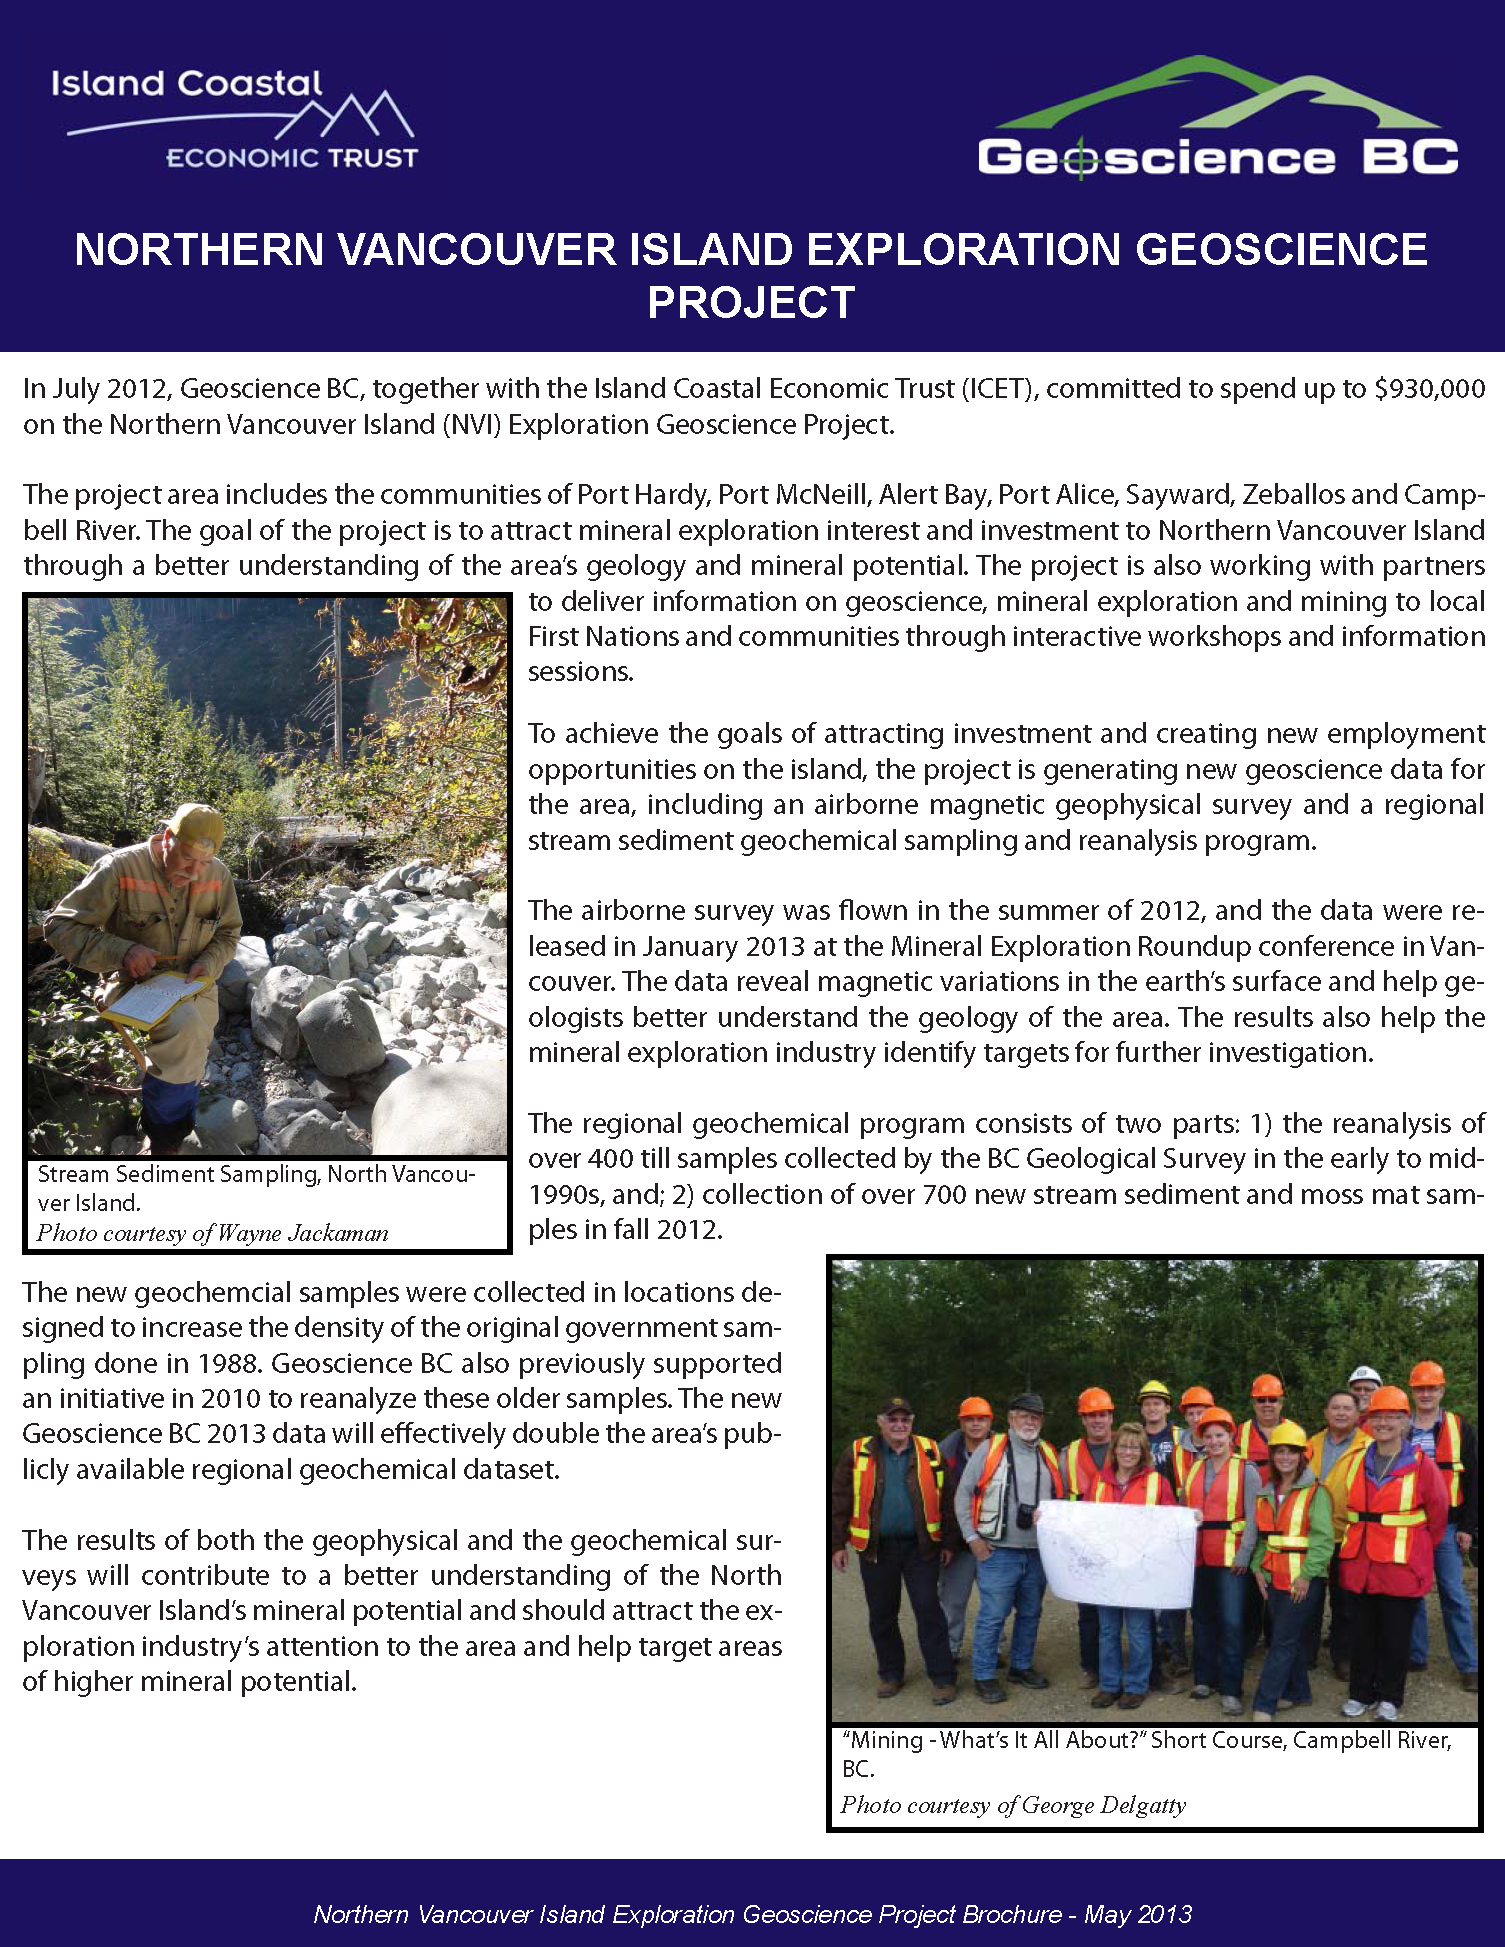 Northern Vancouver Island Exploration Geoscience Project (2013)